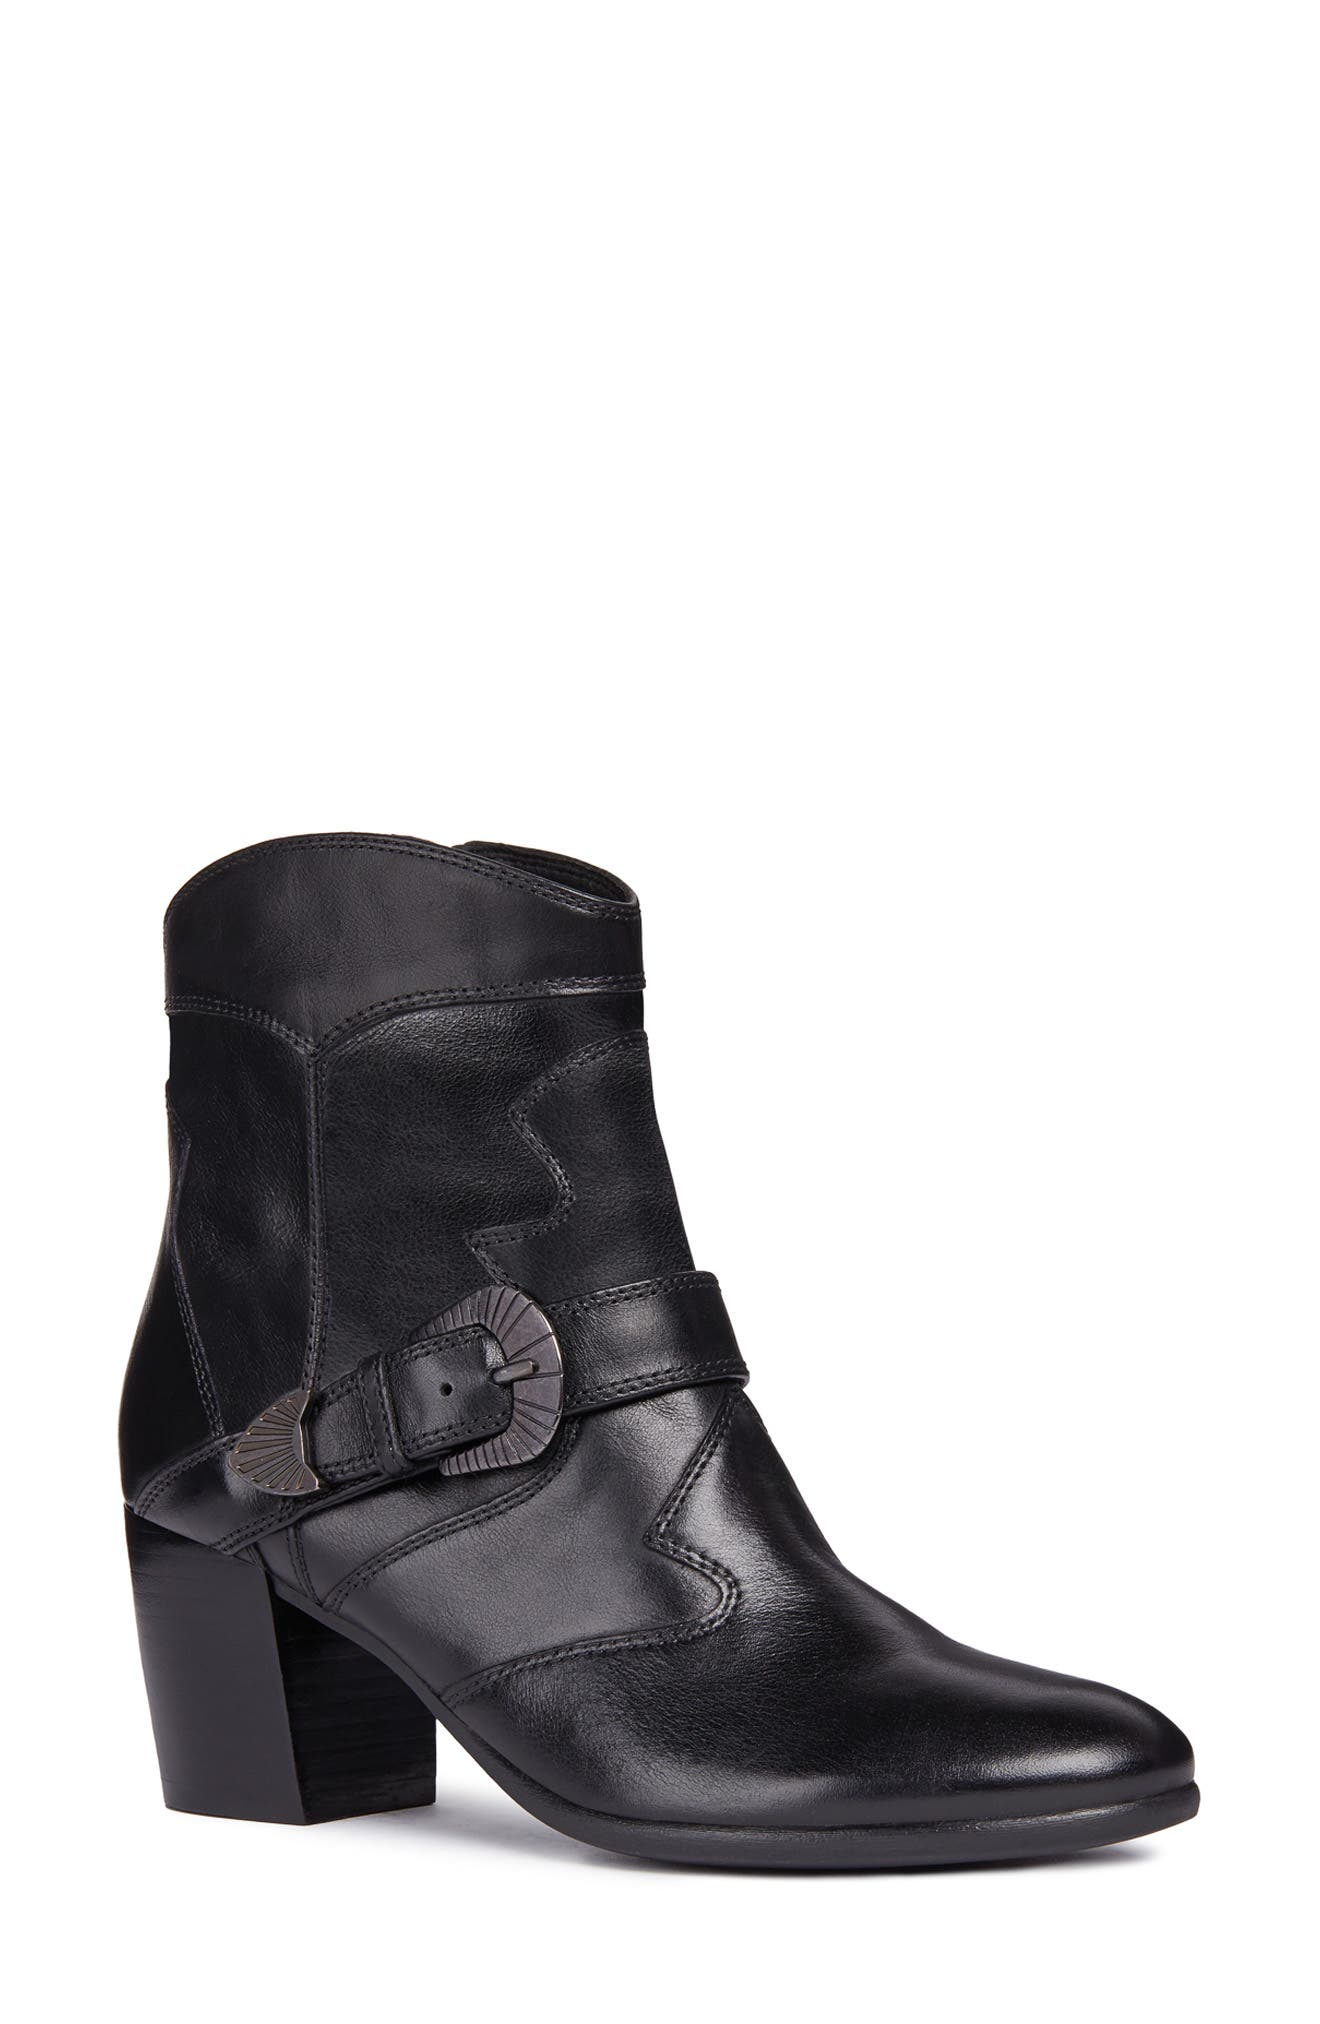 Lucinda Bootie,                             Main thumbnail 1, color,                             BLACK LEATHER